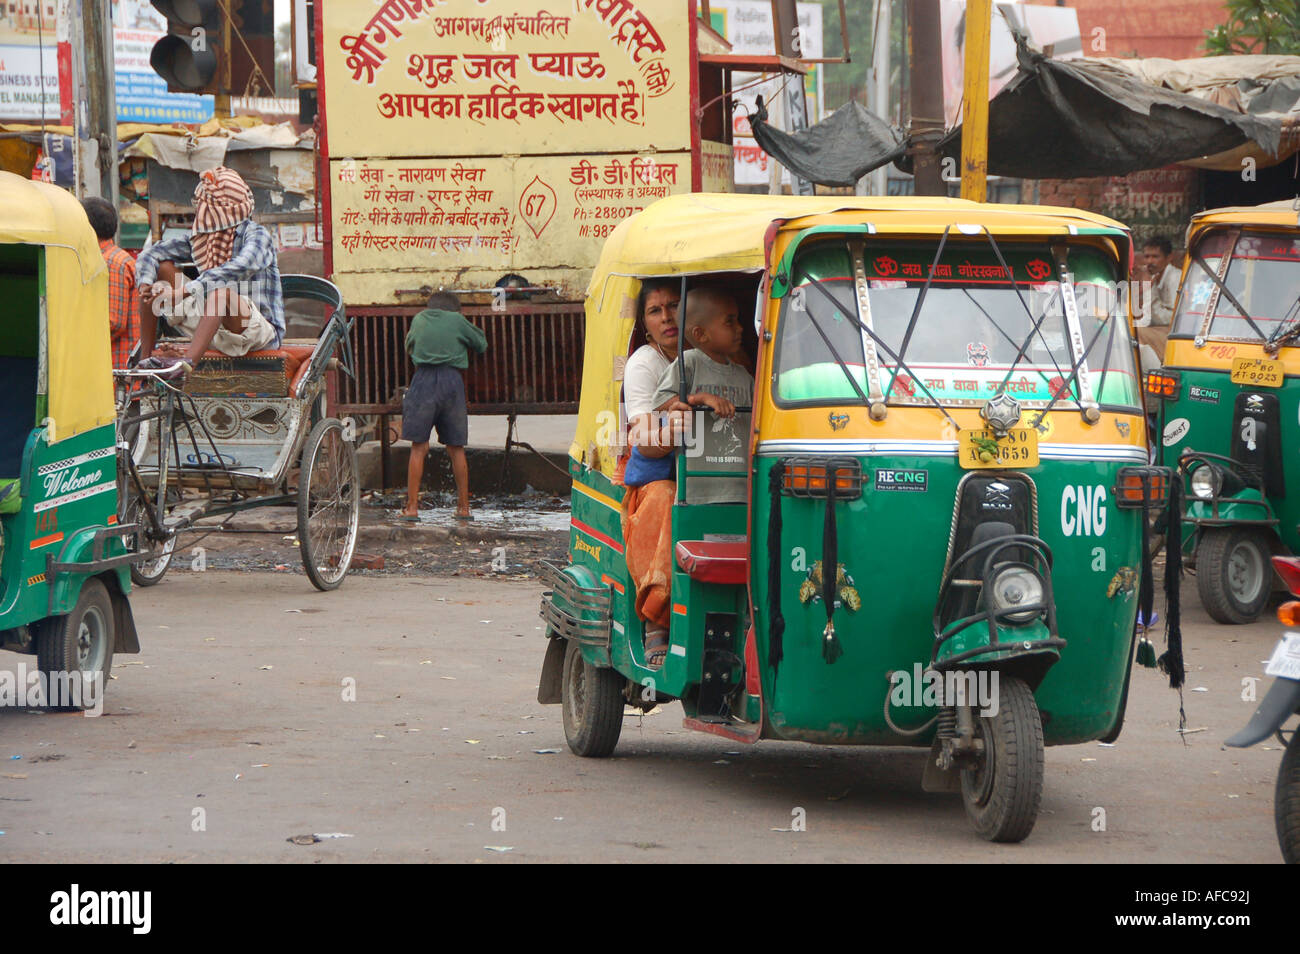 auto rickshaw tuktuk on outskirts of new delhi india stock photo royalty free image. Black Bedroom Furniture Sets. Home Design Ideas